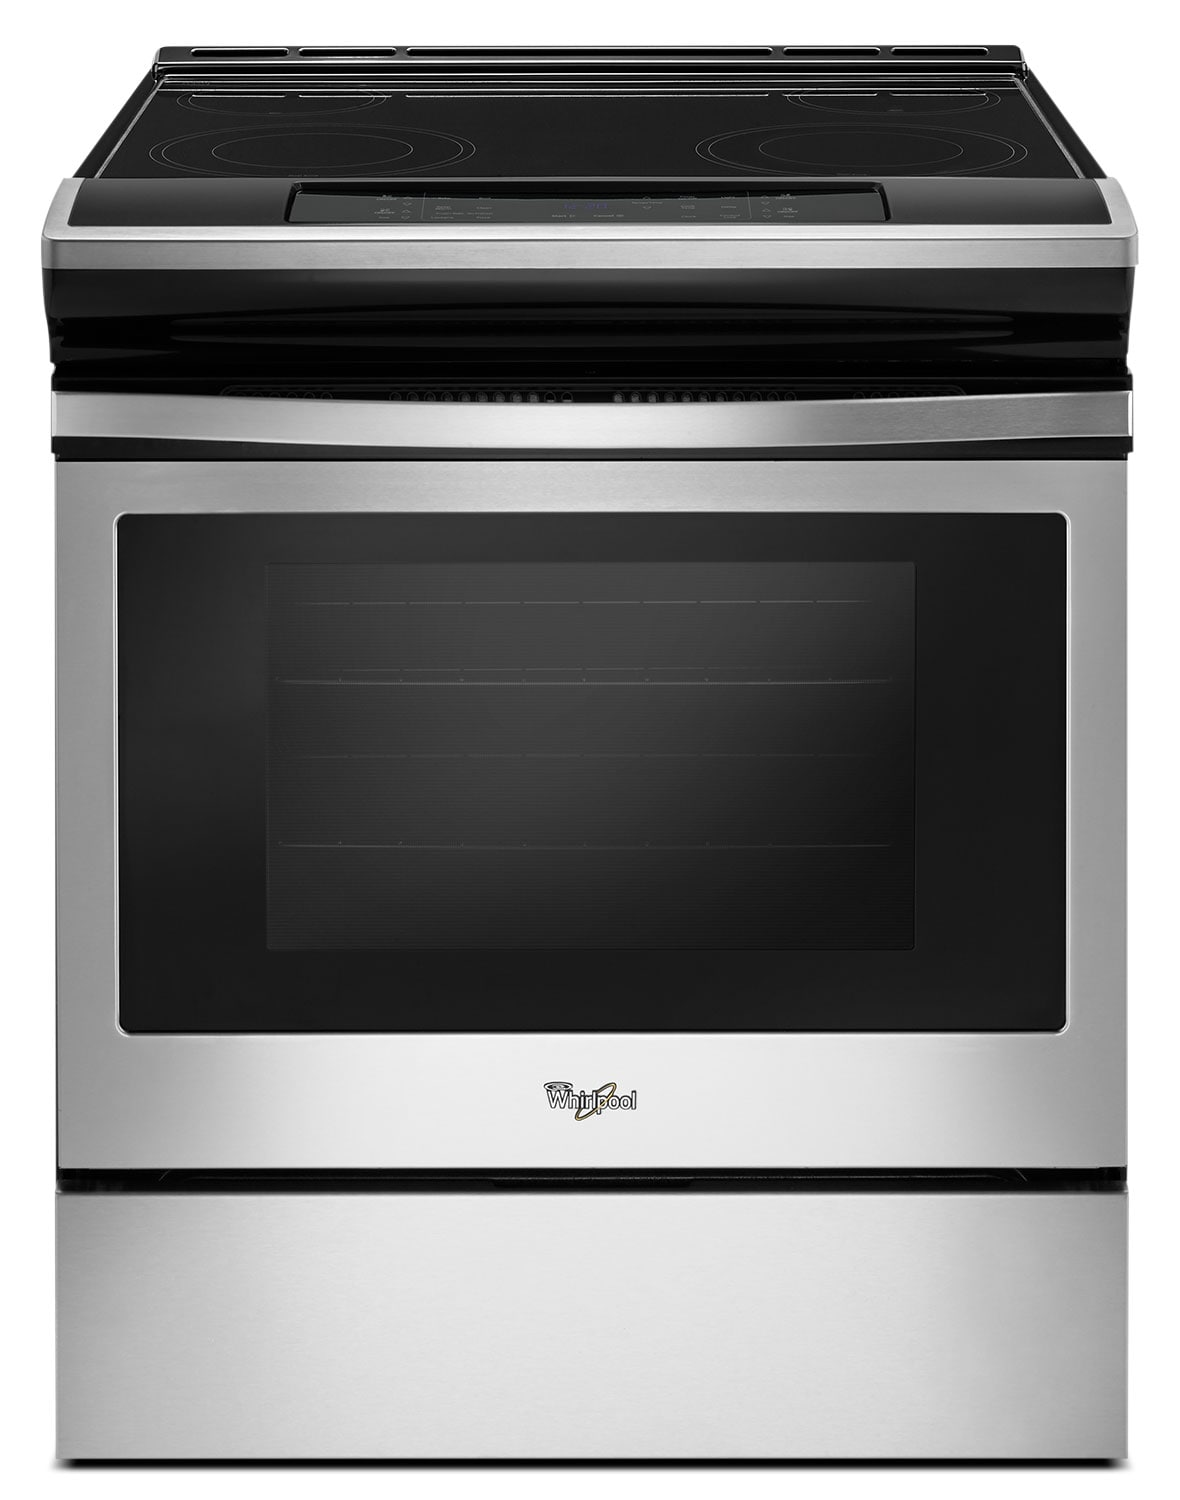 Cooking Products - Whirlpool 4.8 Cu. Ft. Electric Slide-In Range – YWEE510S0FS